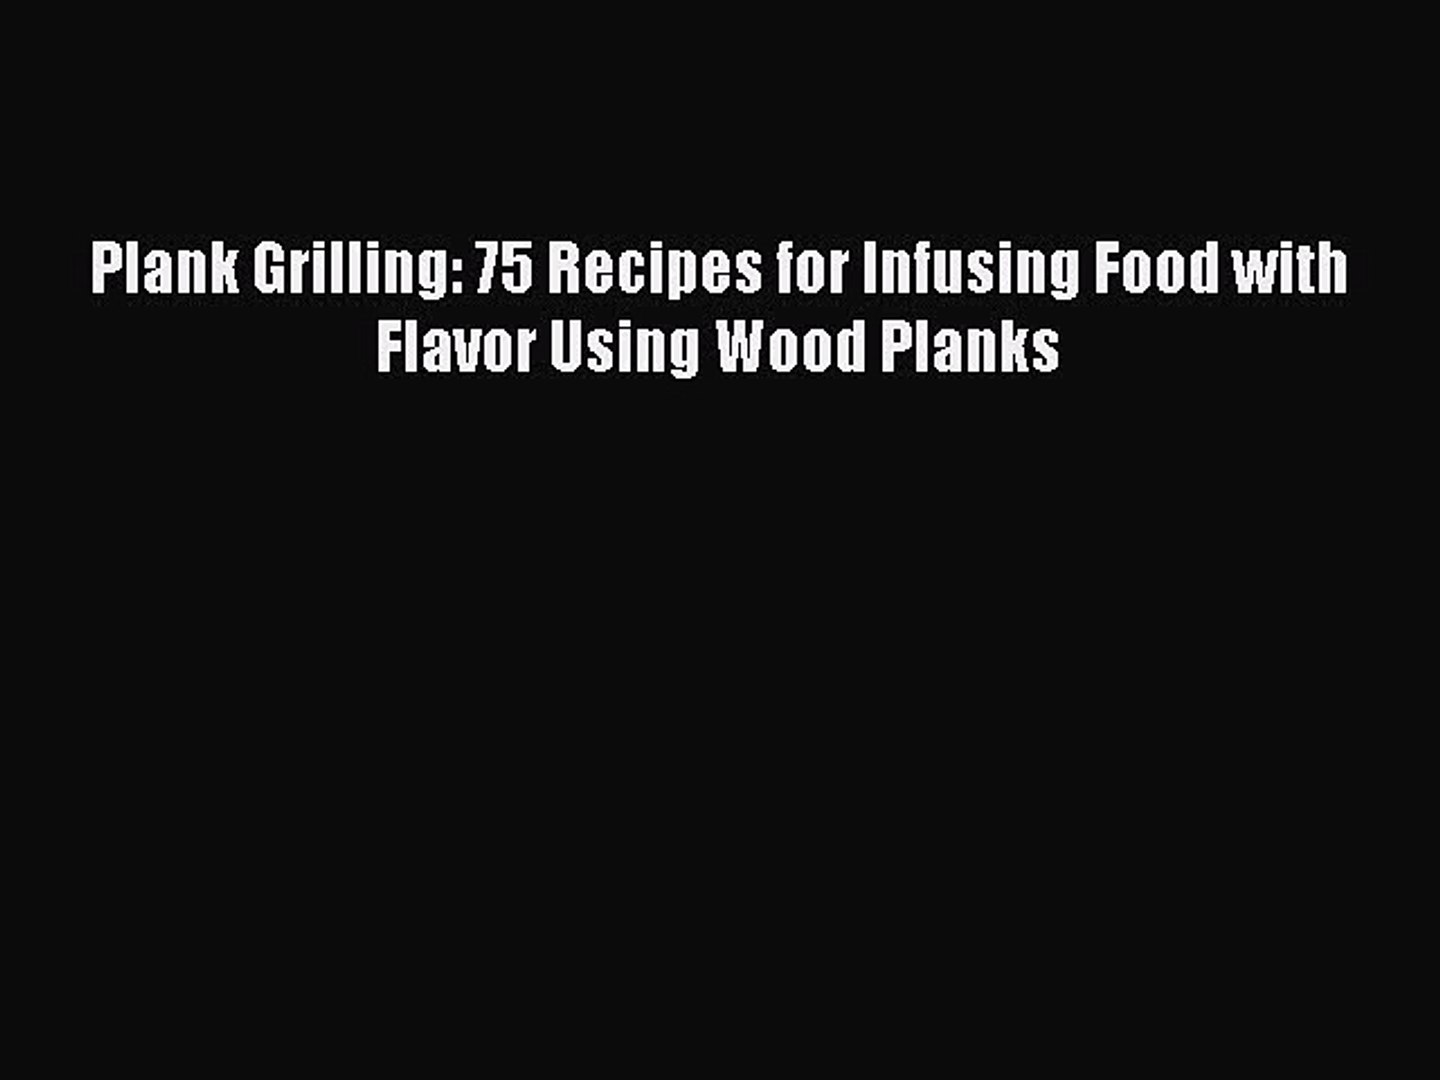 [Download PDF] Plank Grilling: 75 Recipes for Infusing Food with Flavor Using Wood Planks Read